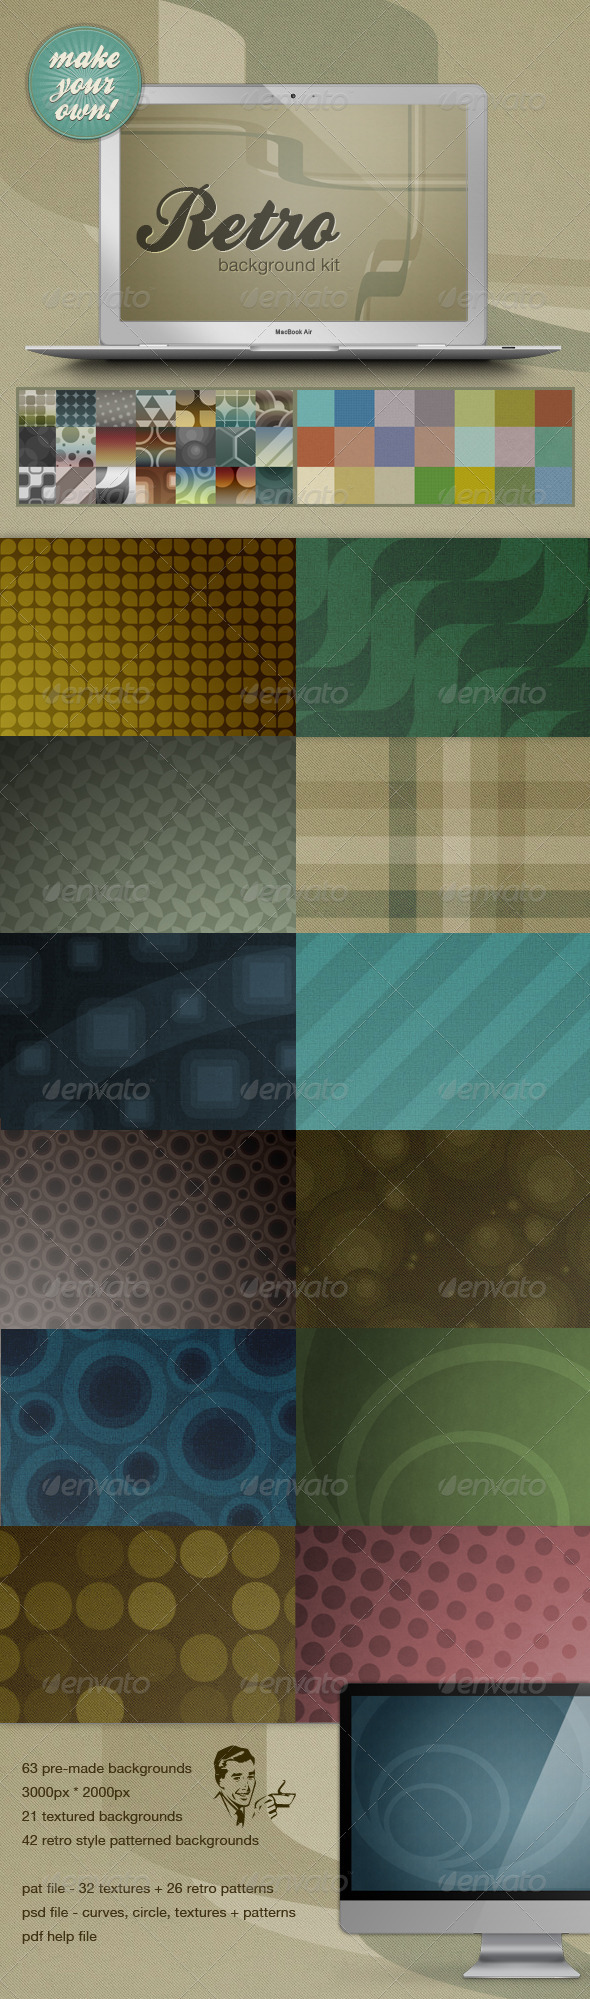 Retro Web Background Kit - Make Your Own!